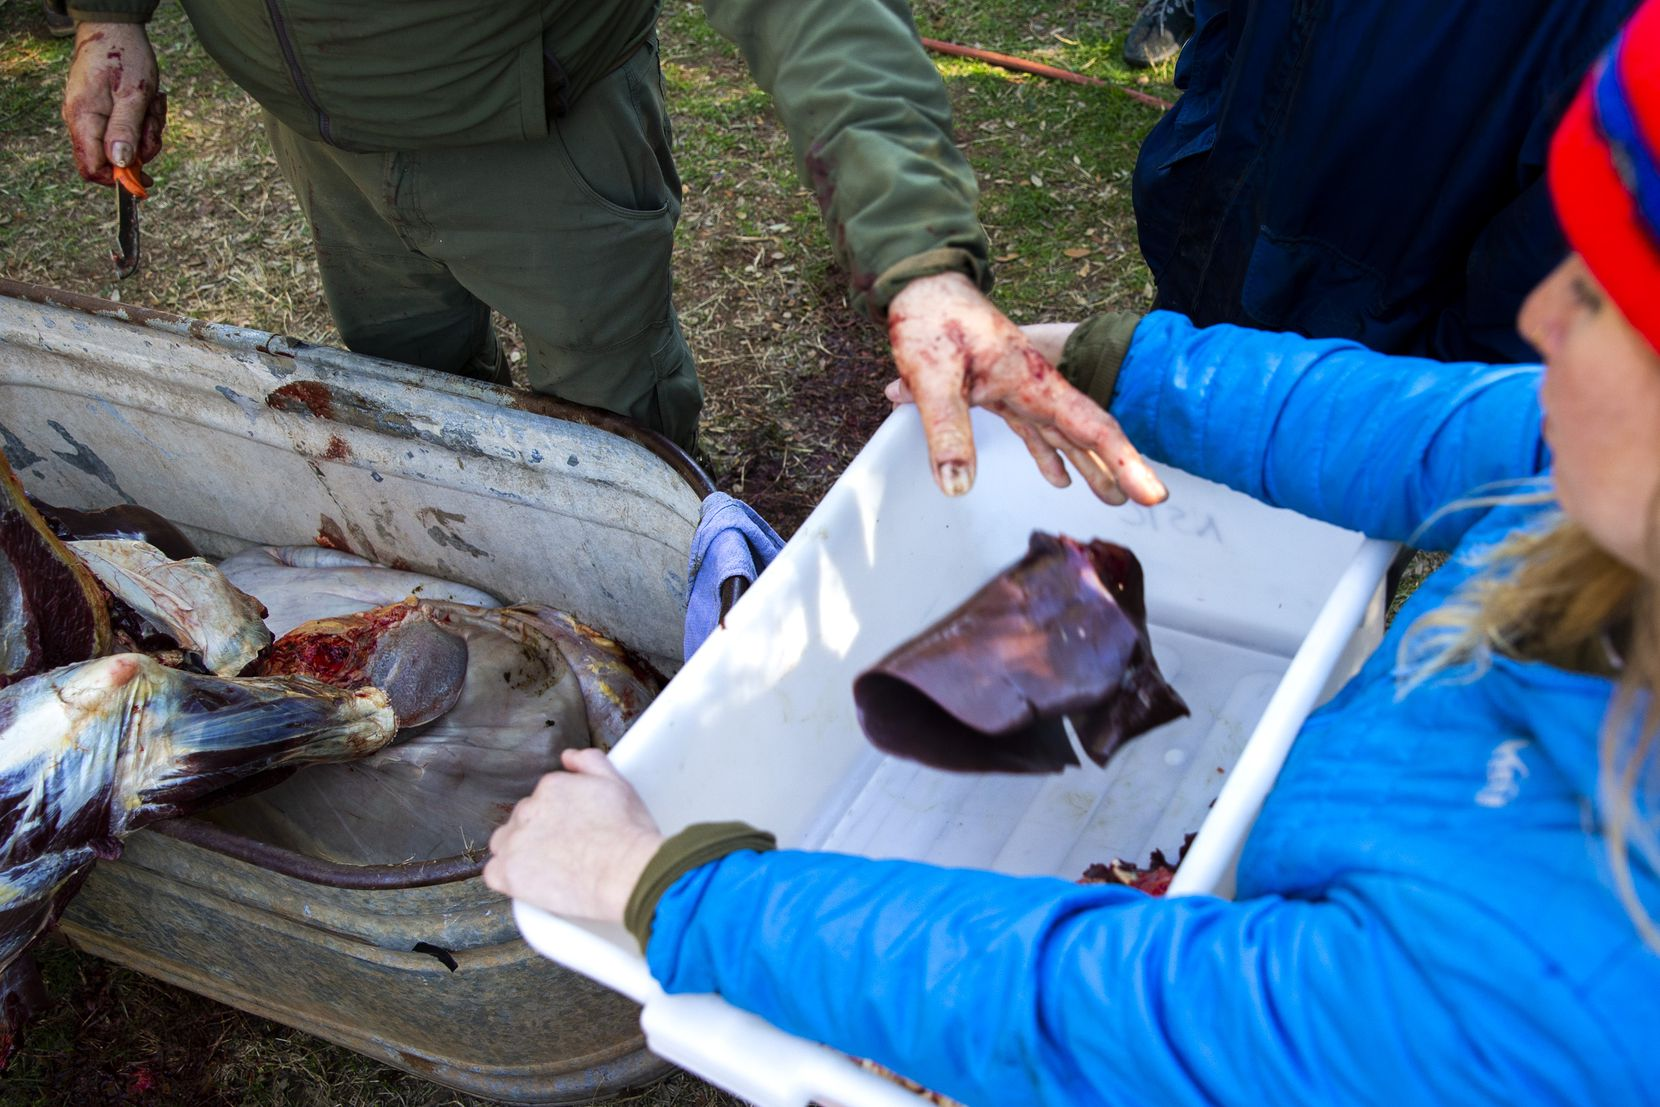 Butcher Jesse Griffiths (left) places a bison liver into a bin held by Tracey Heymans during a daylong bison field harvest event at Roam Ranch in Fredericksburg, Texas, on Sunday, Jan. 19, 2020.